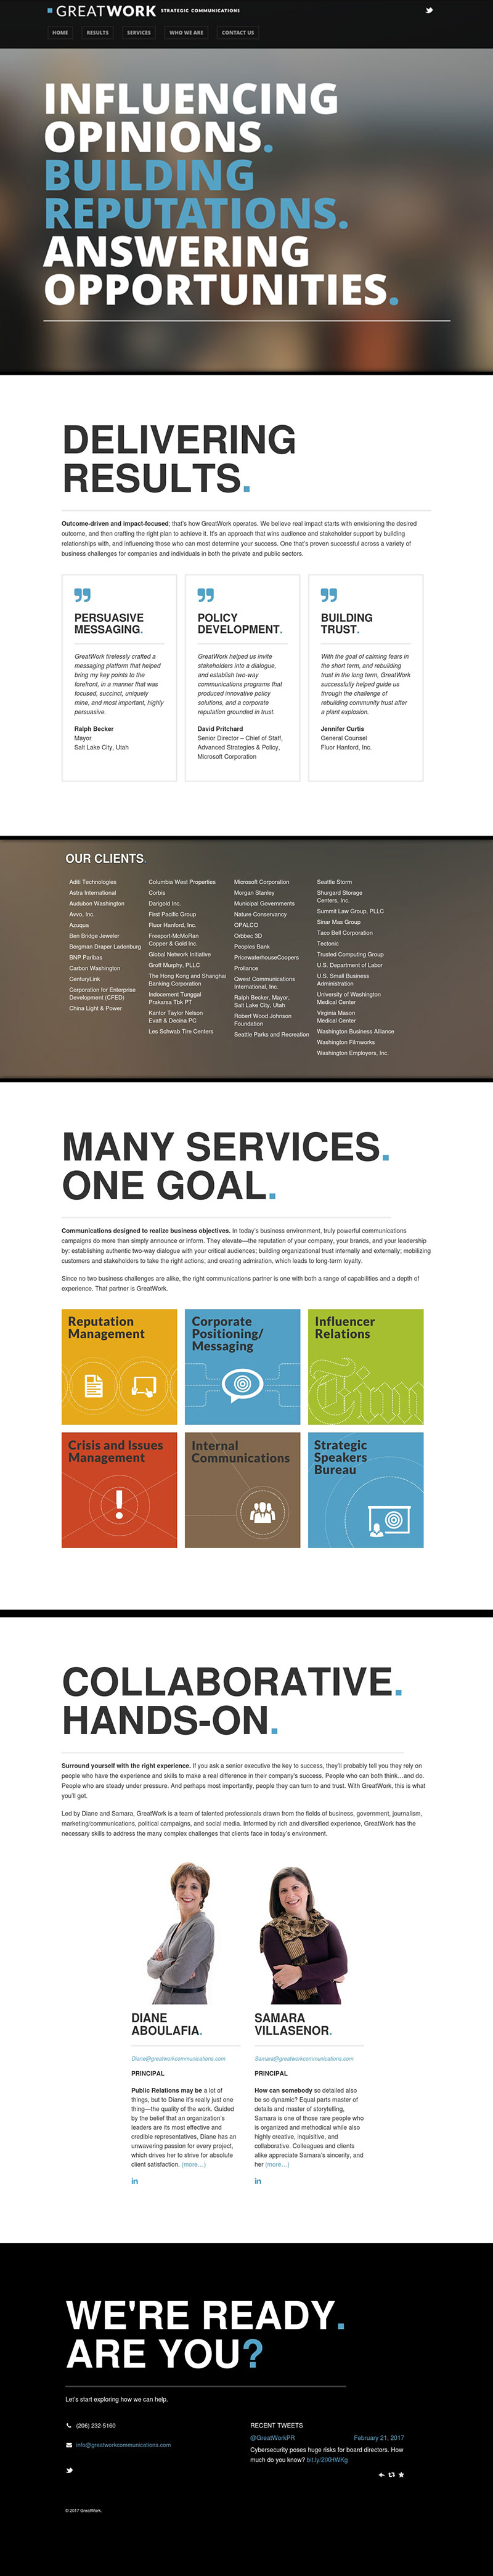 GreatWork Communications Website Screenshot